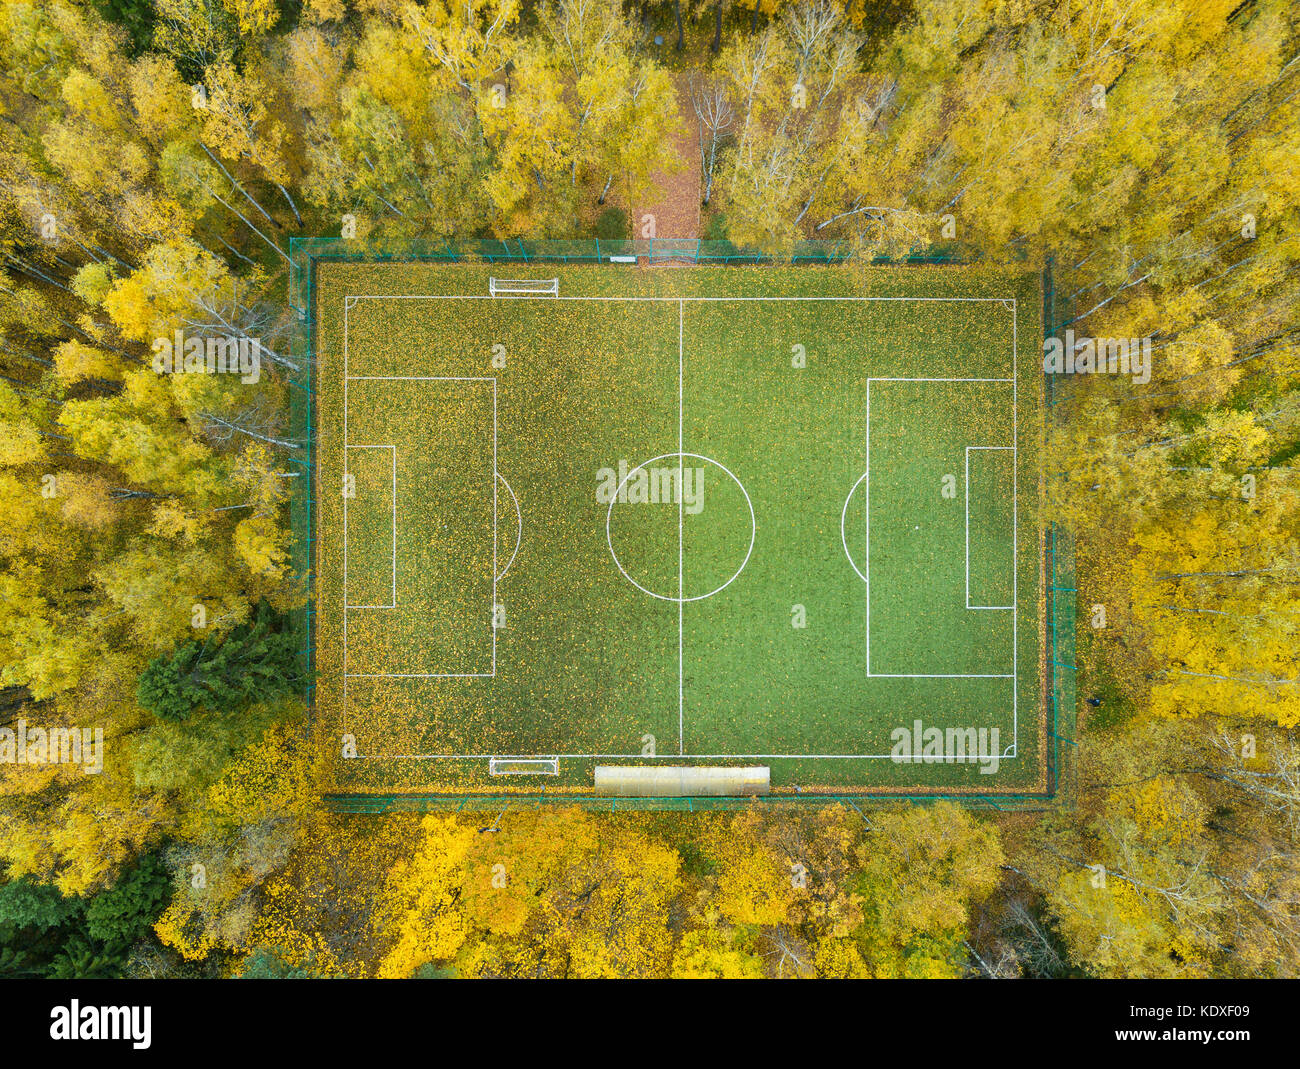 Football pitch surrounded by autumn yellow forest - aerial view - Stock Image